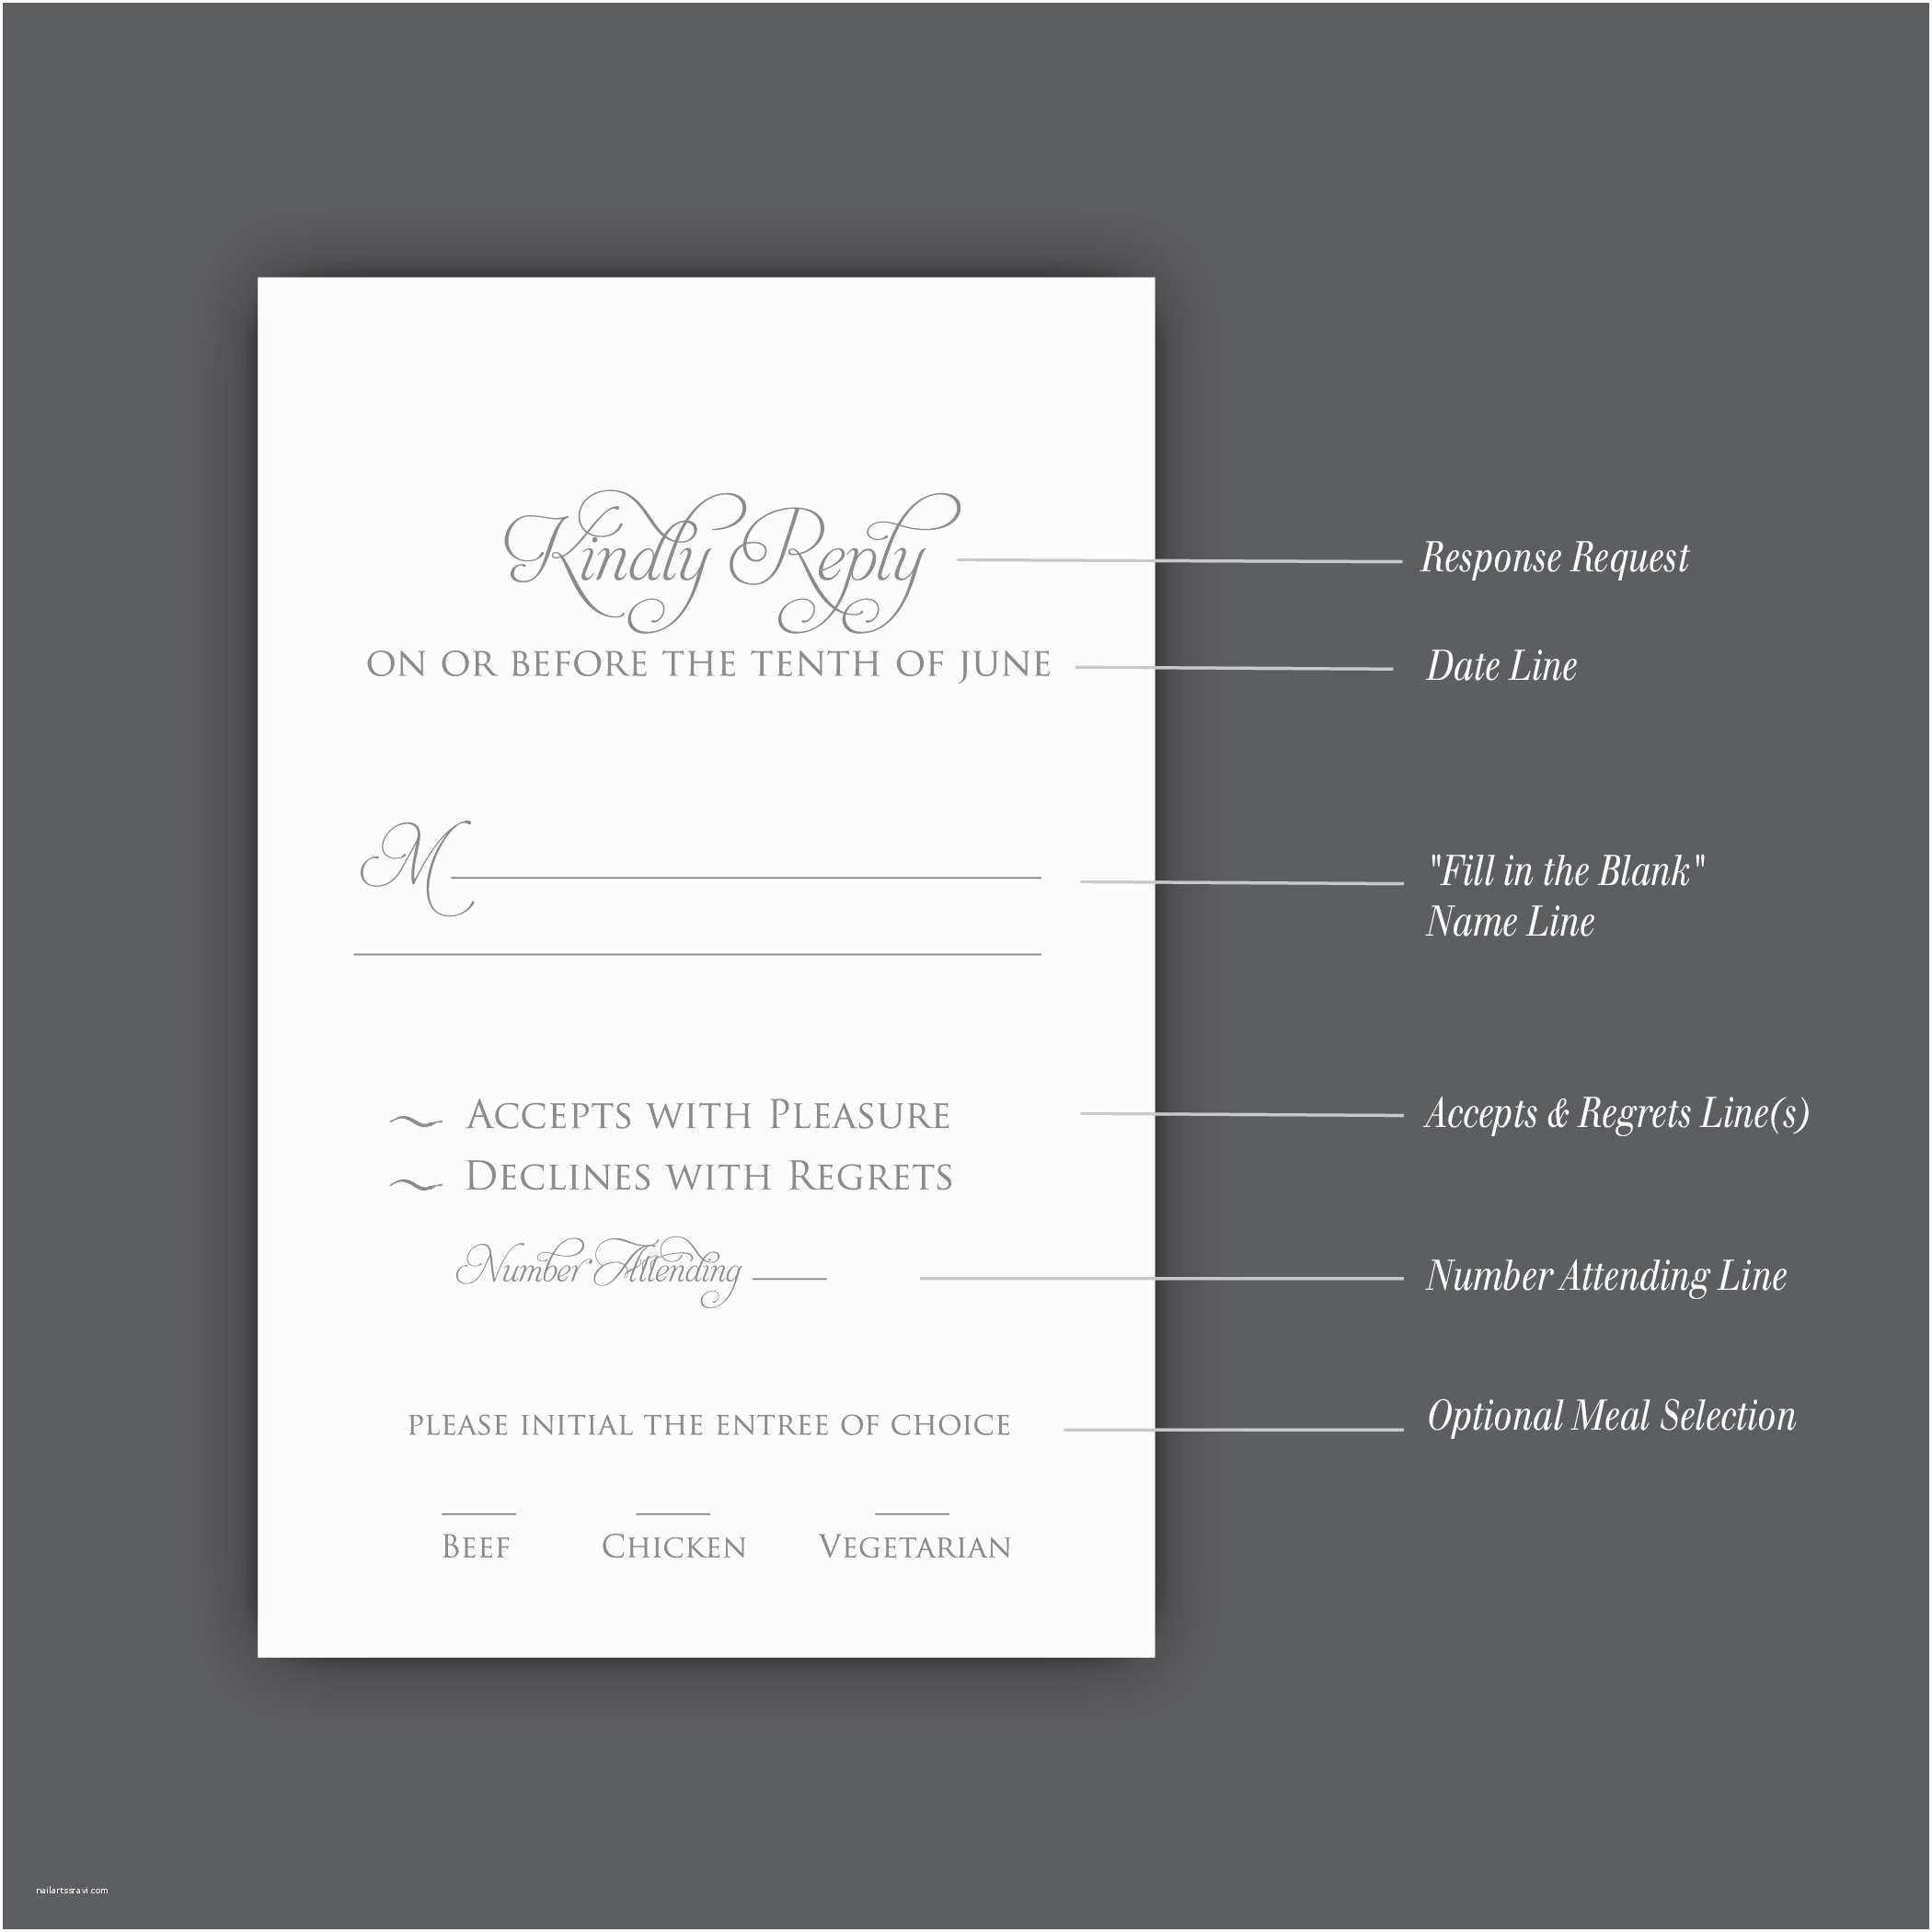 Wedding Invitations and Response Cards All In One Invitation Card Wedding Invitation Reply Card Wording